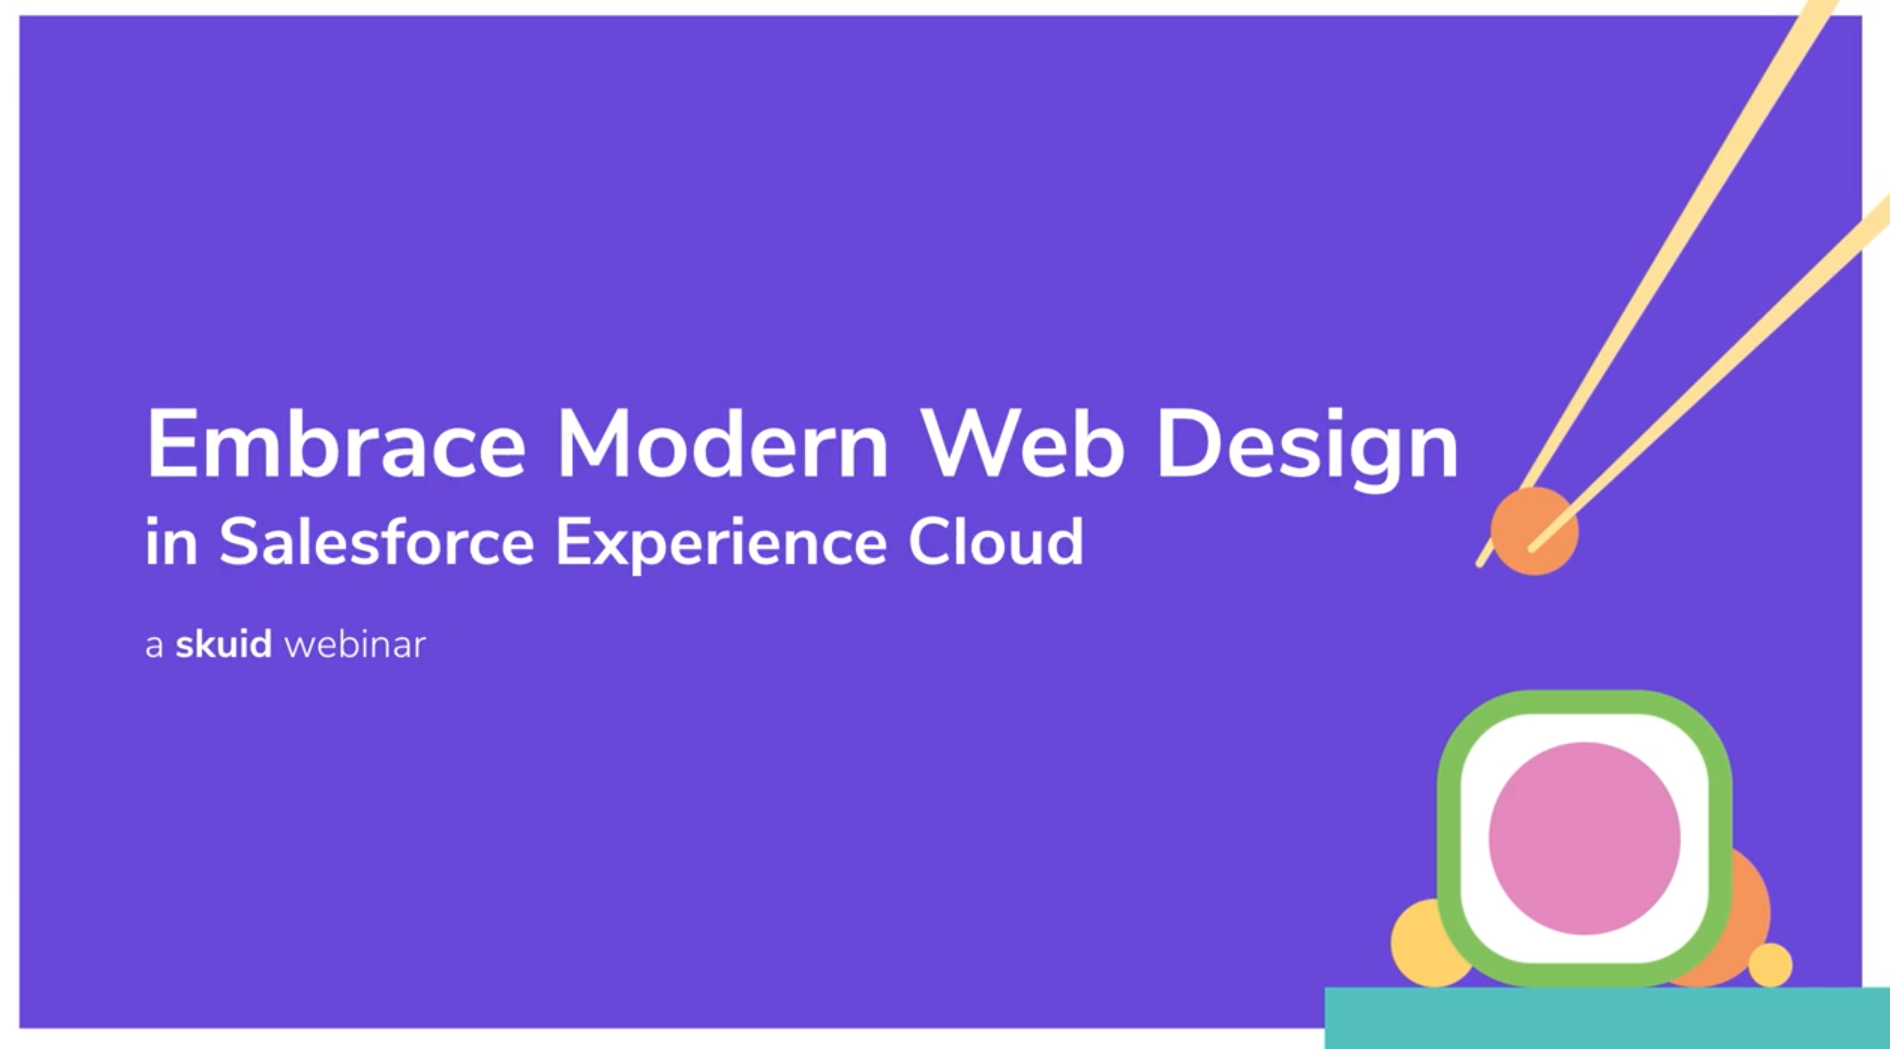 Embrace modern web design in Salesforce Experience Cloud.